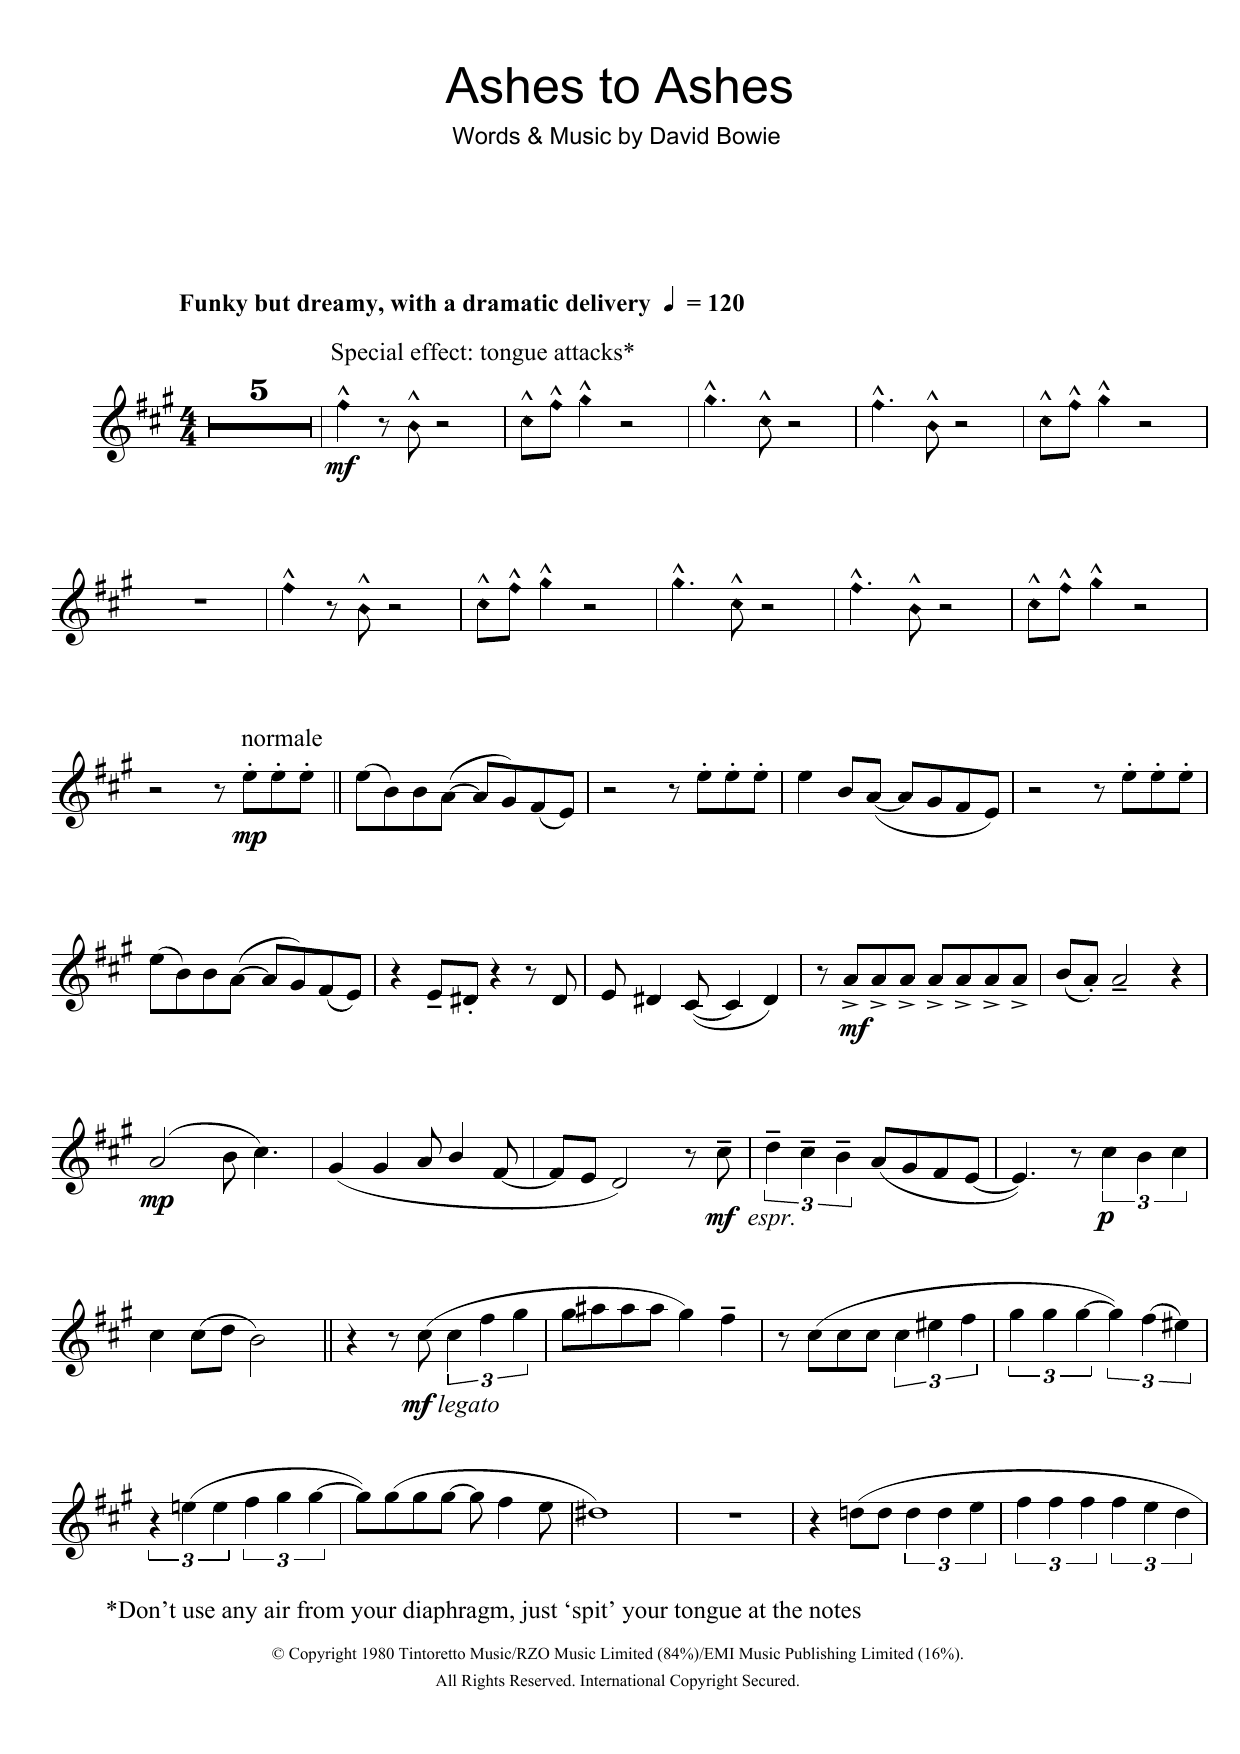 David Bowie - Ashes To Ashes at Stanton's Sheet Music